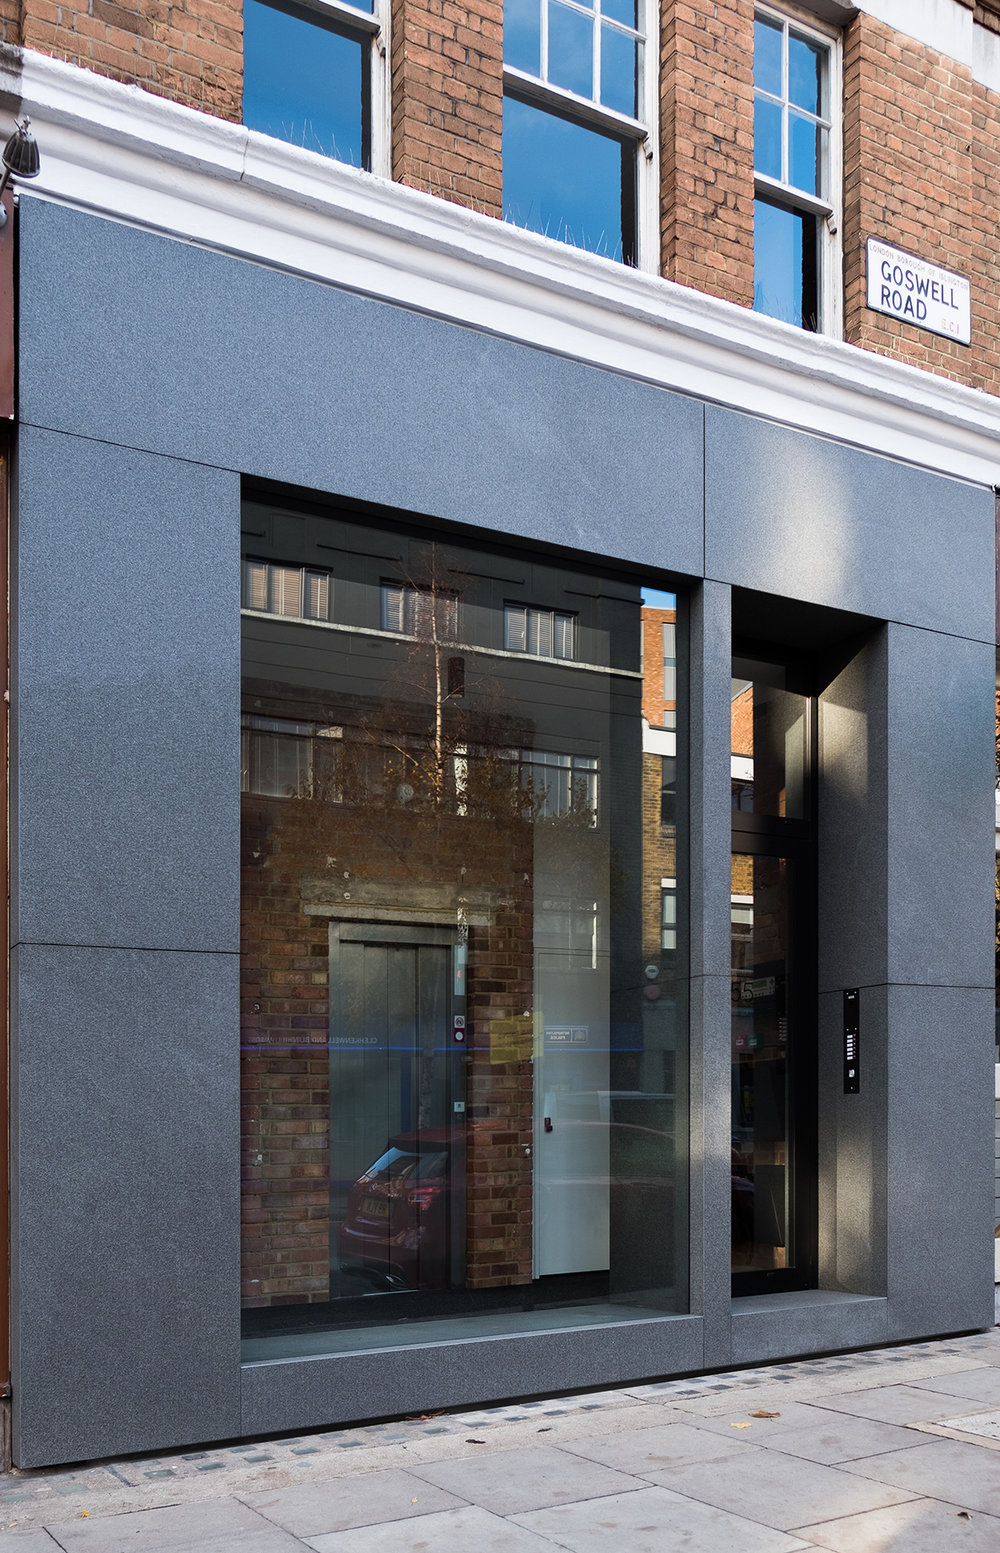 Goswell-Road-Clerkenwell-London-Office-Facade-Design-Refurbishment-Granite-Grey-Architecture.jpg